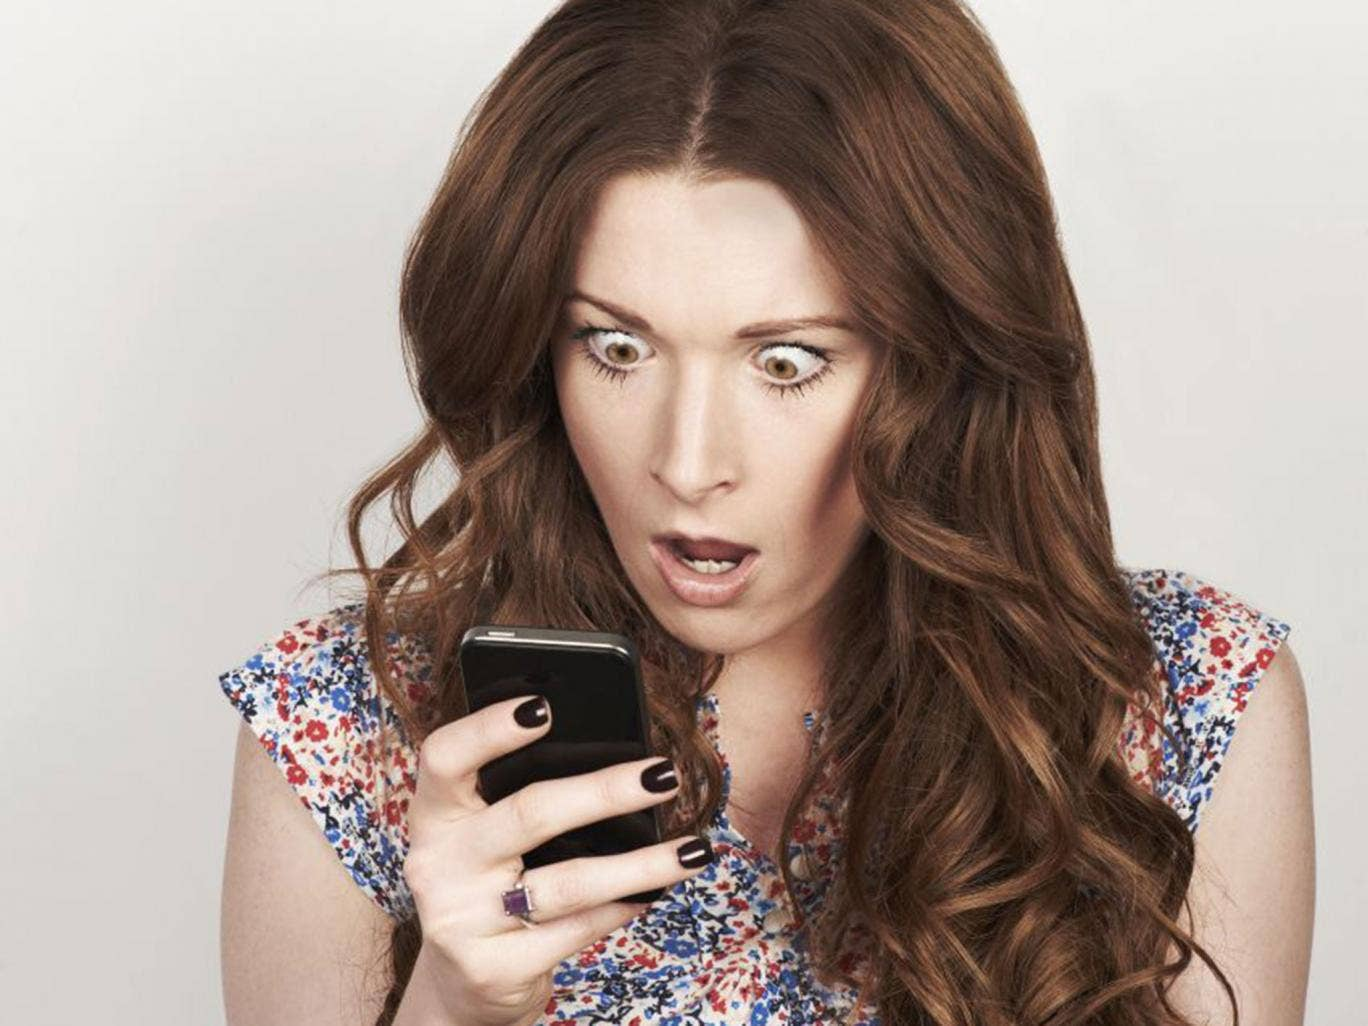 Spellbound:  turning off the autocorrect meant losing the chance to make all sorts of jokes about texting mix-ups